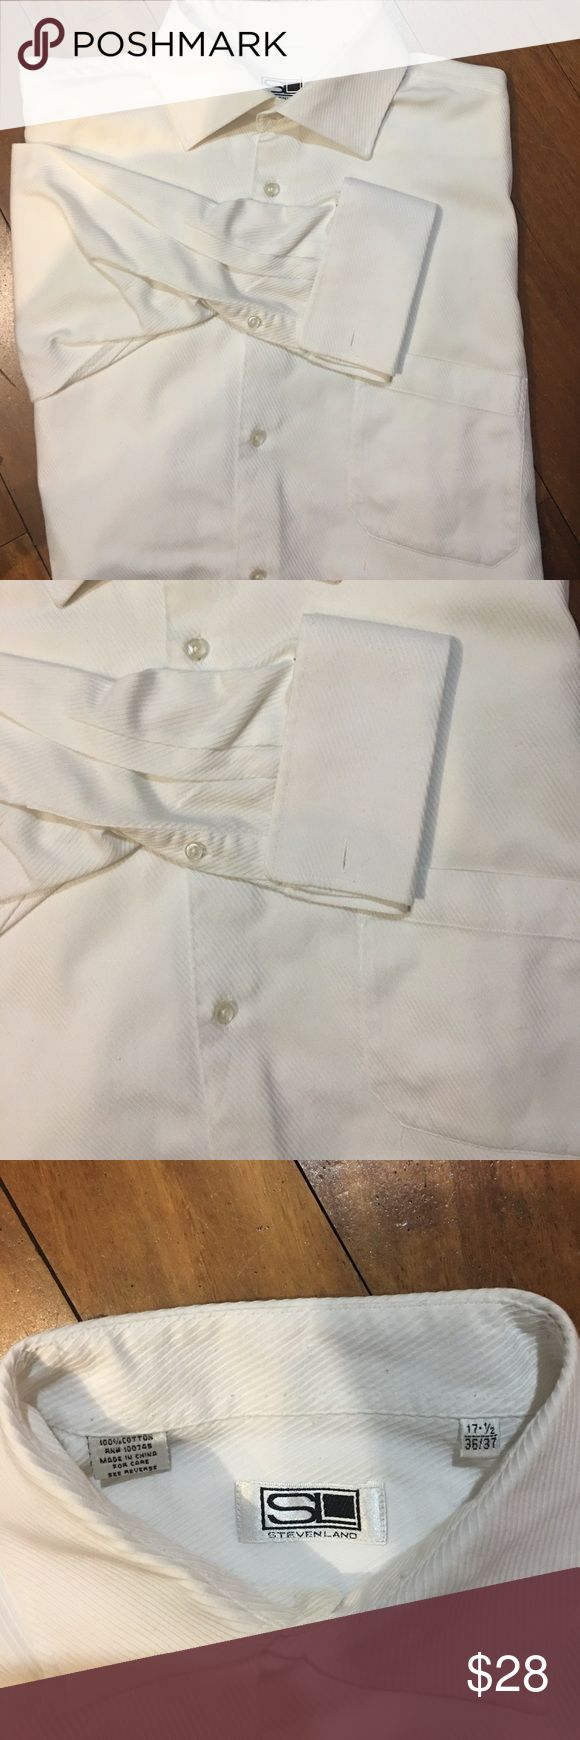 White button down French cuff shirt 17.5/36/37 Steveland white French cuff button down shirt with one pocket preowned excellent condition stevenland Shirts Dress Shirts